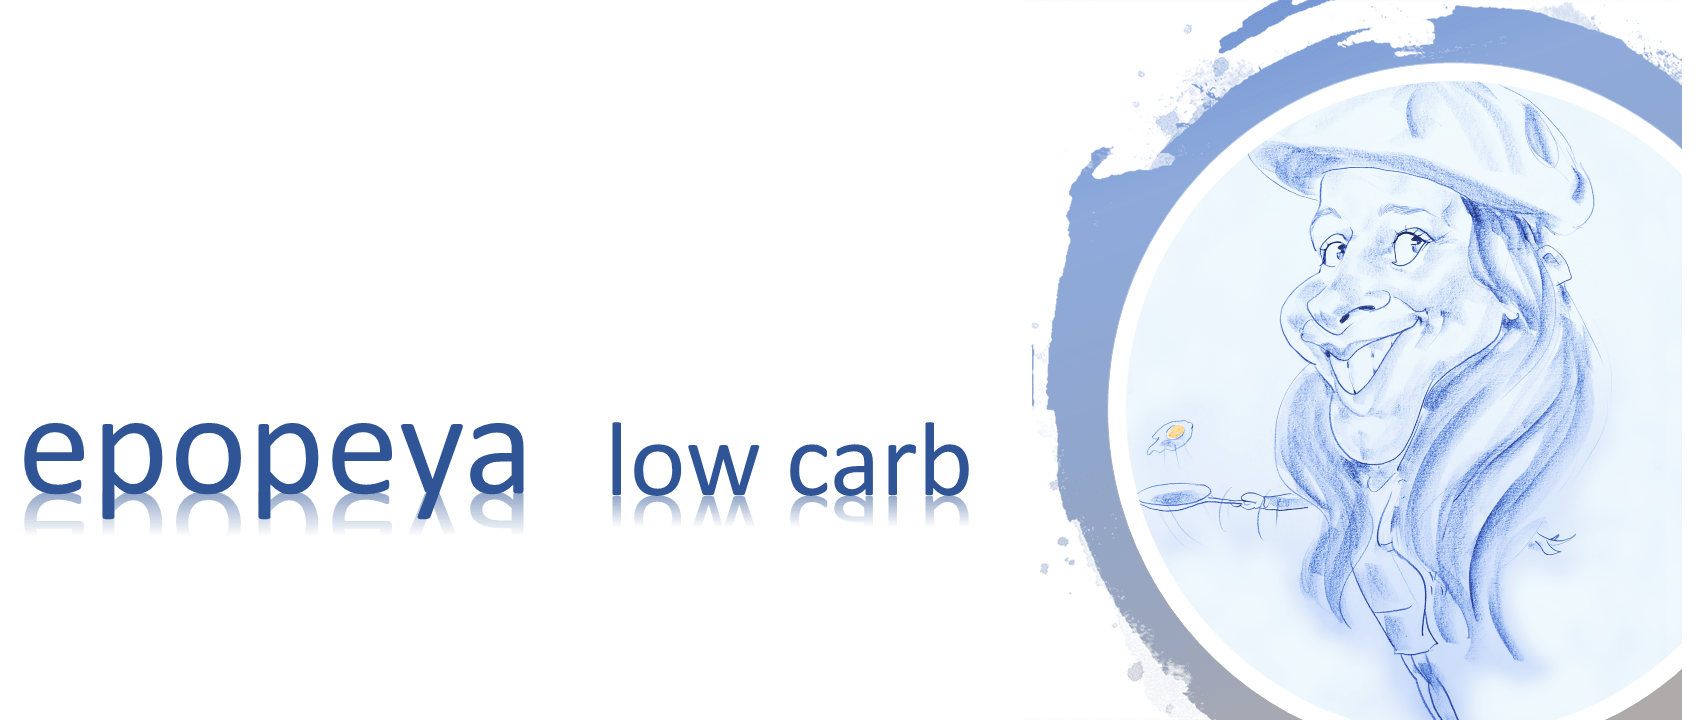 epopeya low carb